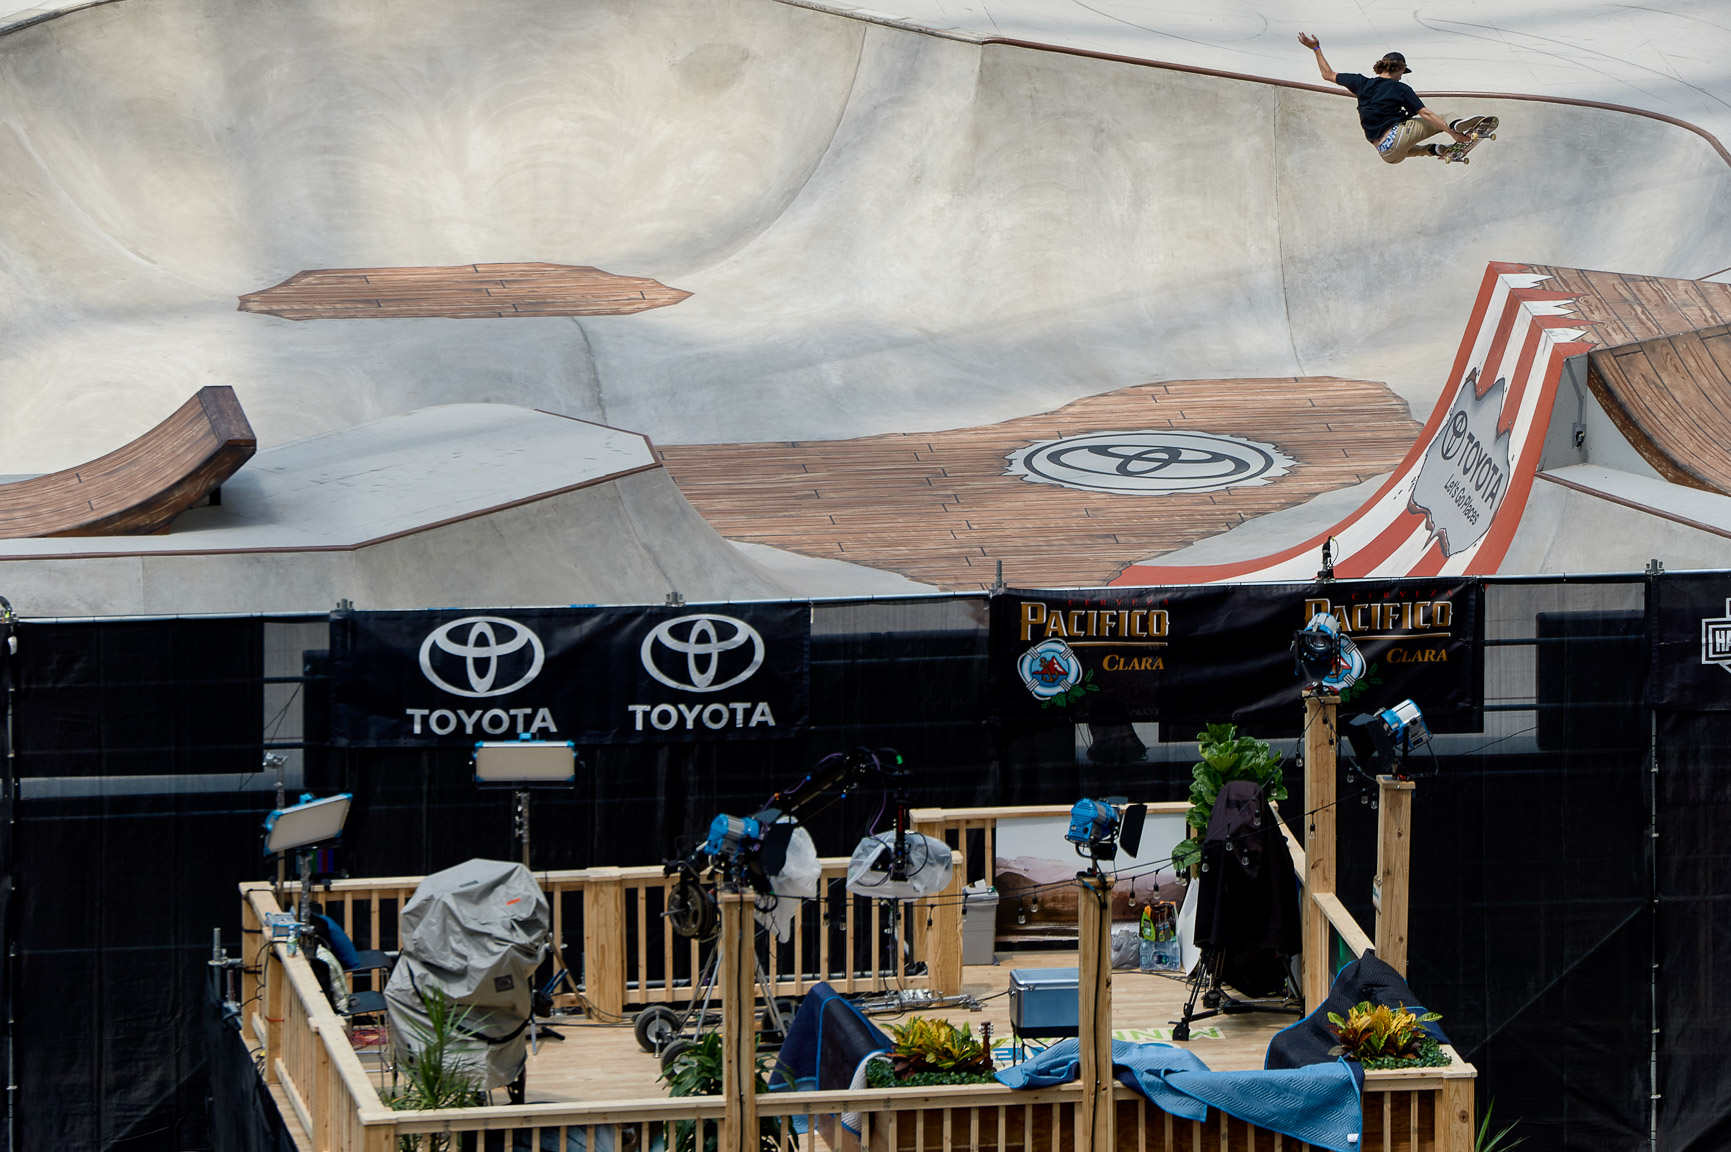 Tom Schaar, who currently has five X Games Skateboard Big Air medals to his credit, prepares to compete in Park on Thursday at X Games Minneapolis. The Men's Skateboard Park final goes down at 2:30 p.m. ET Sunday.